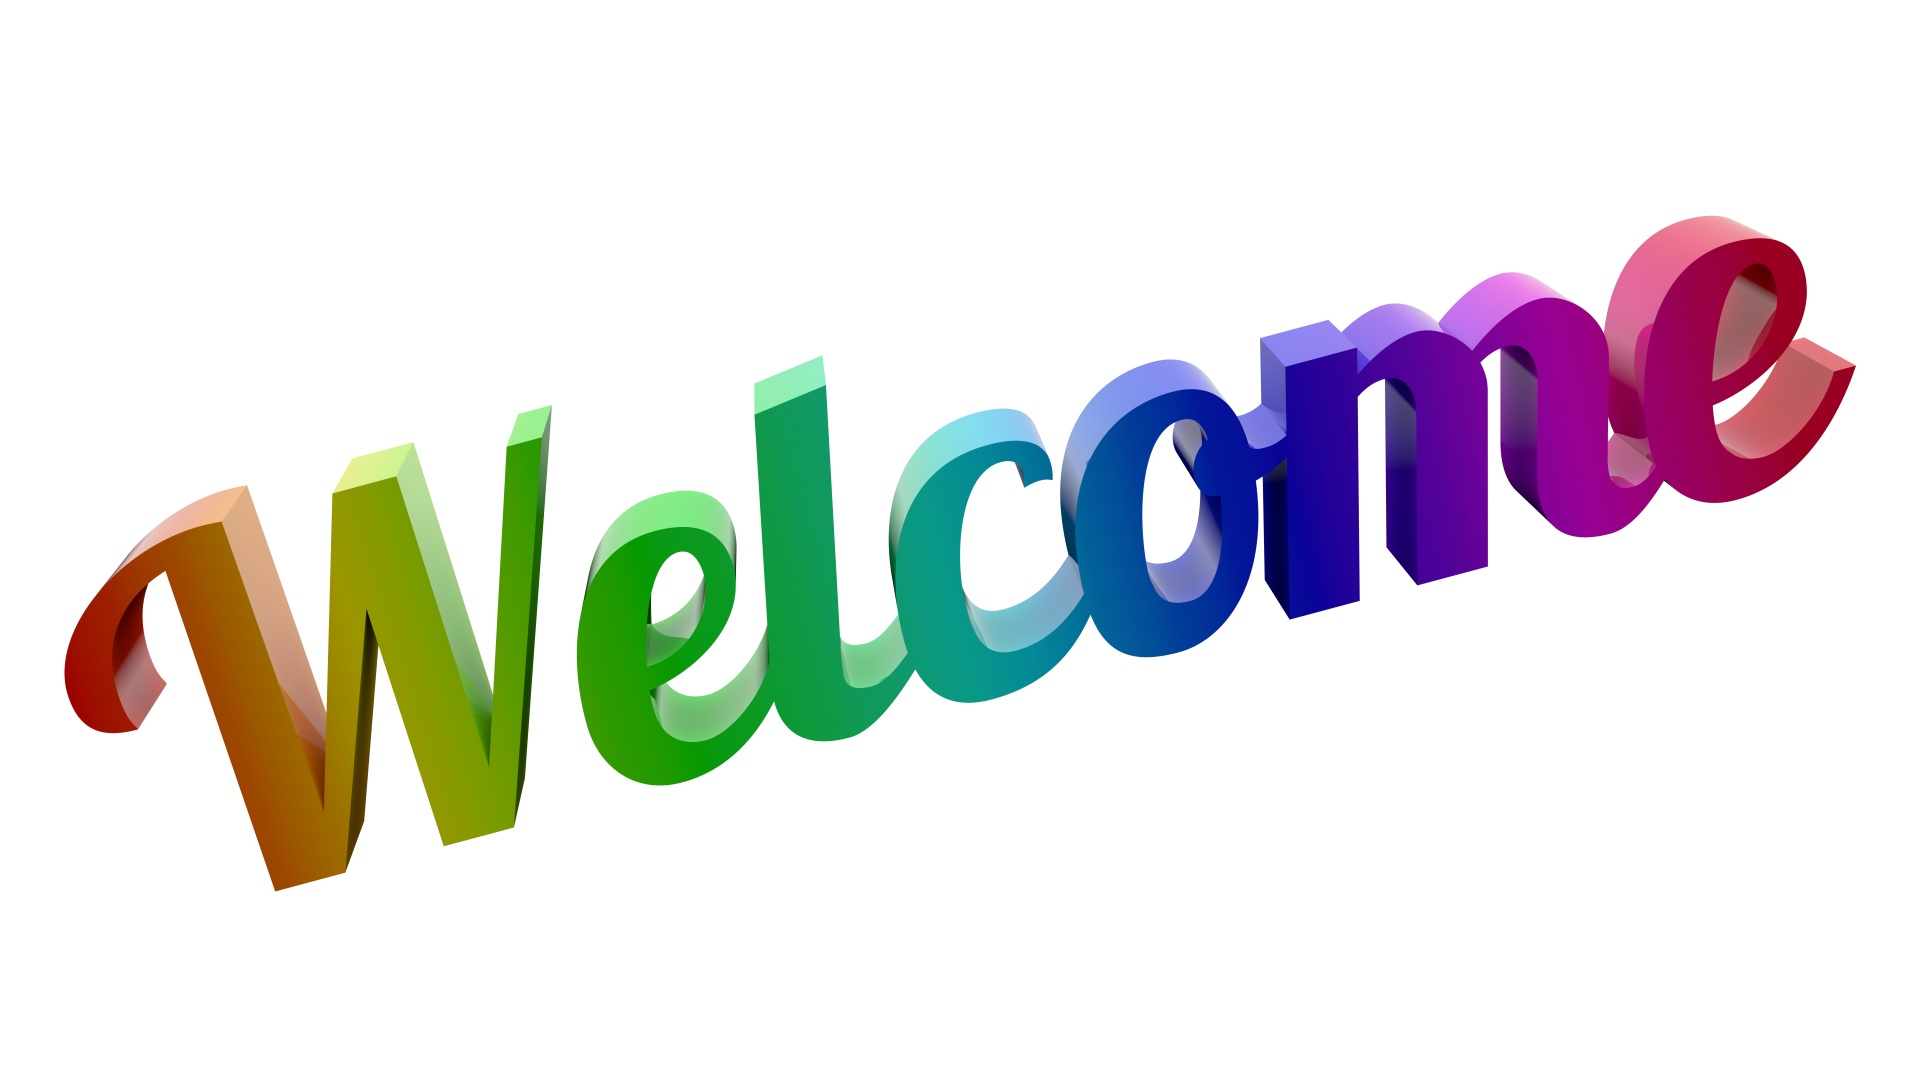 Word Welcome in colourful lettering